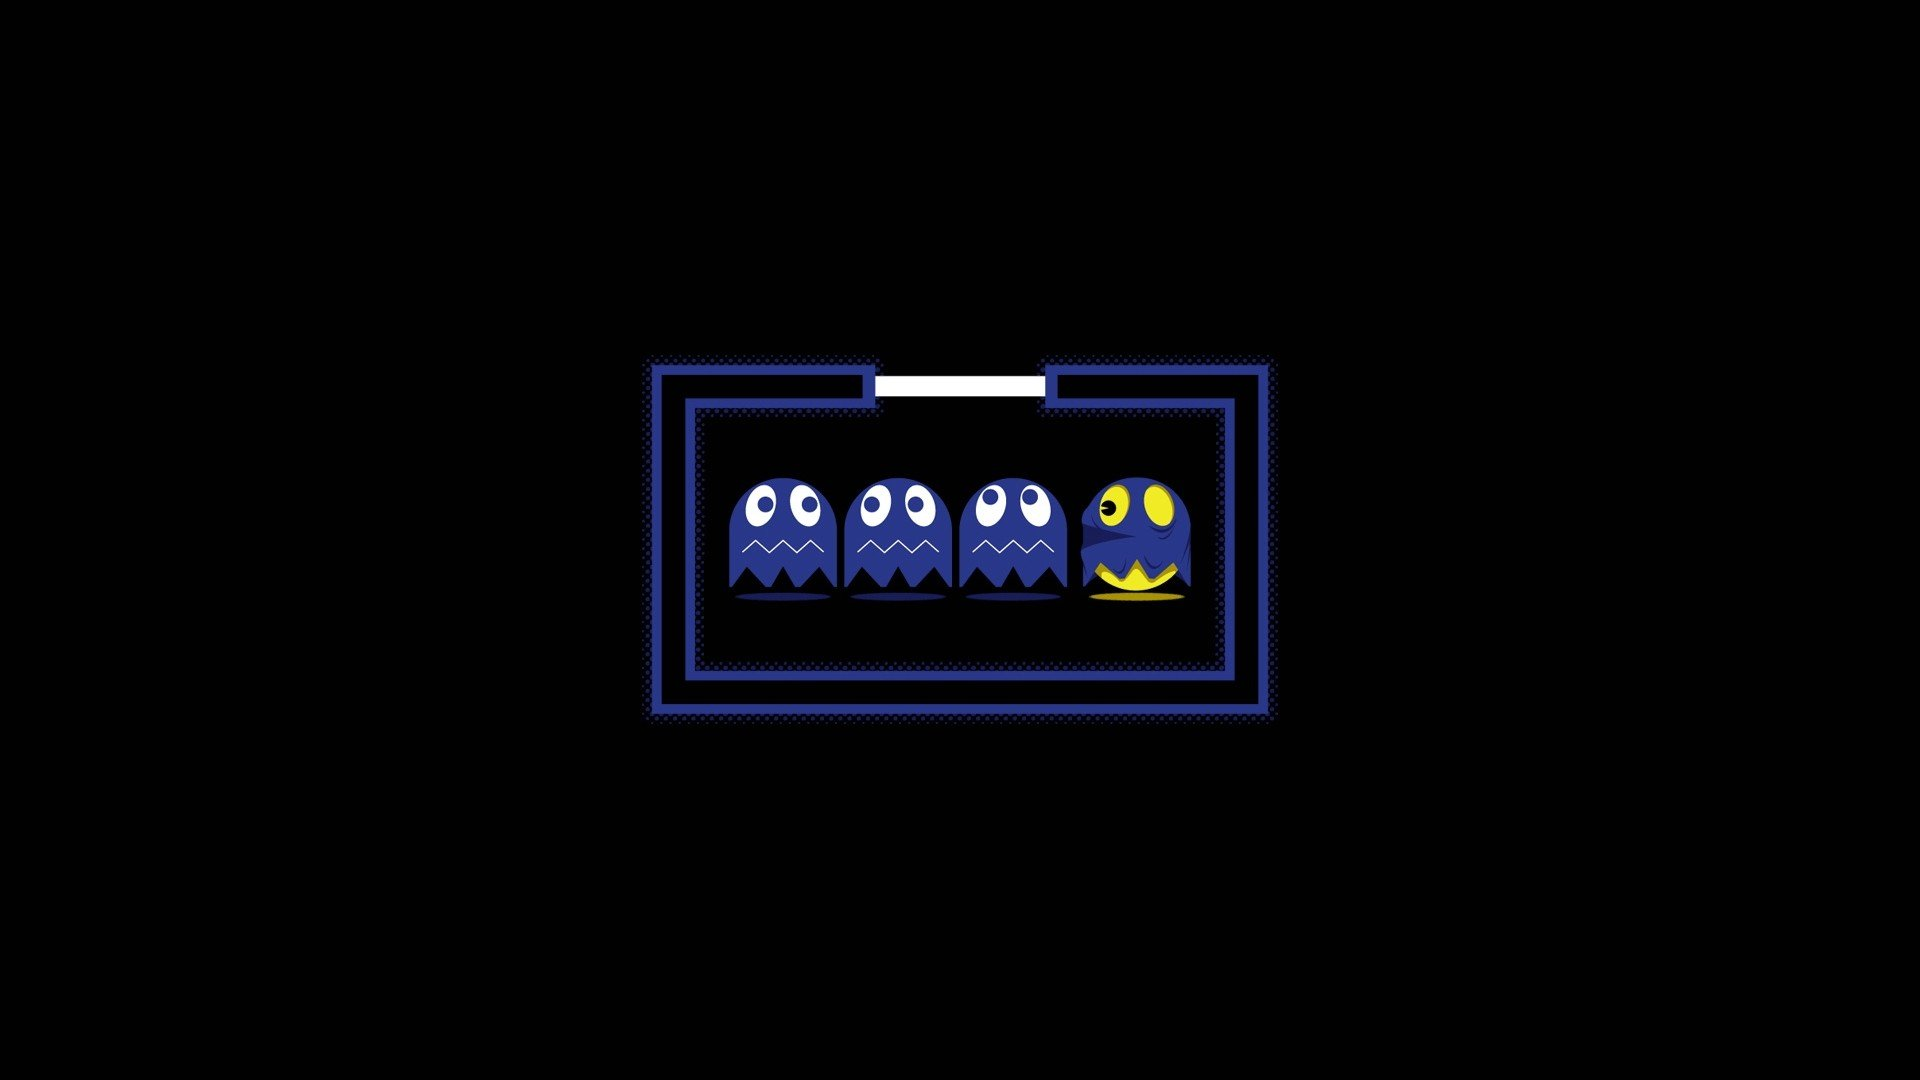 abstract video games ghosts solid Pac Man simplistic simple wallpaper 1920x1080